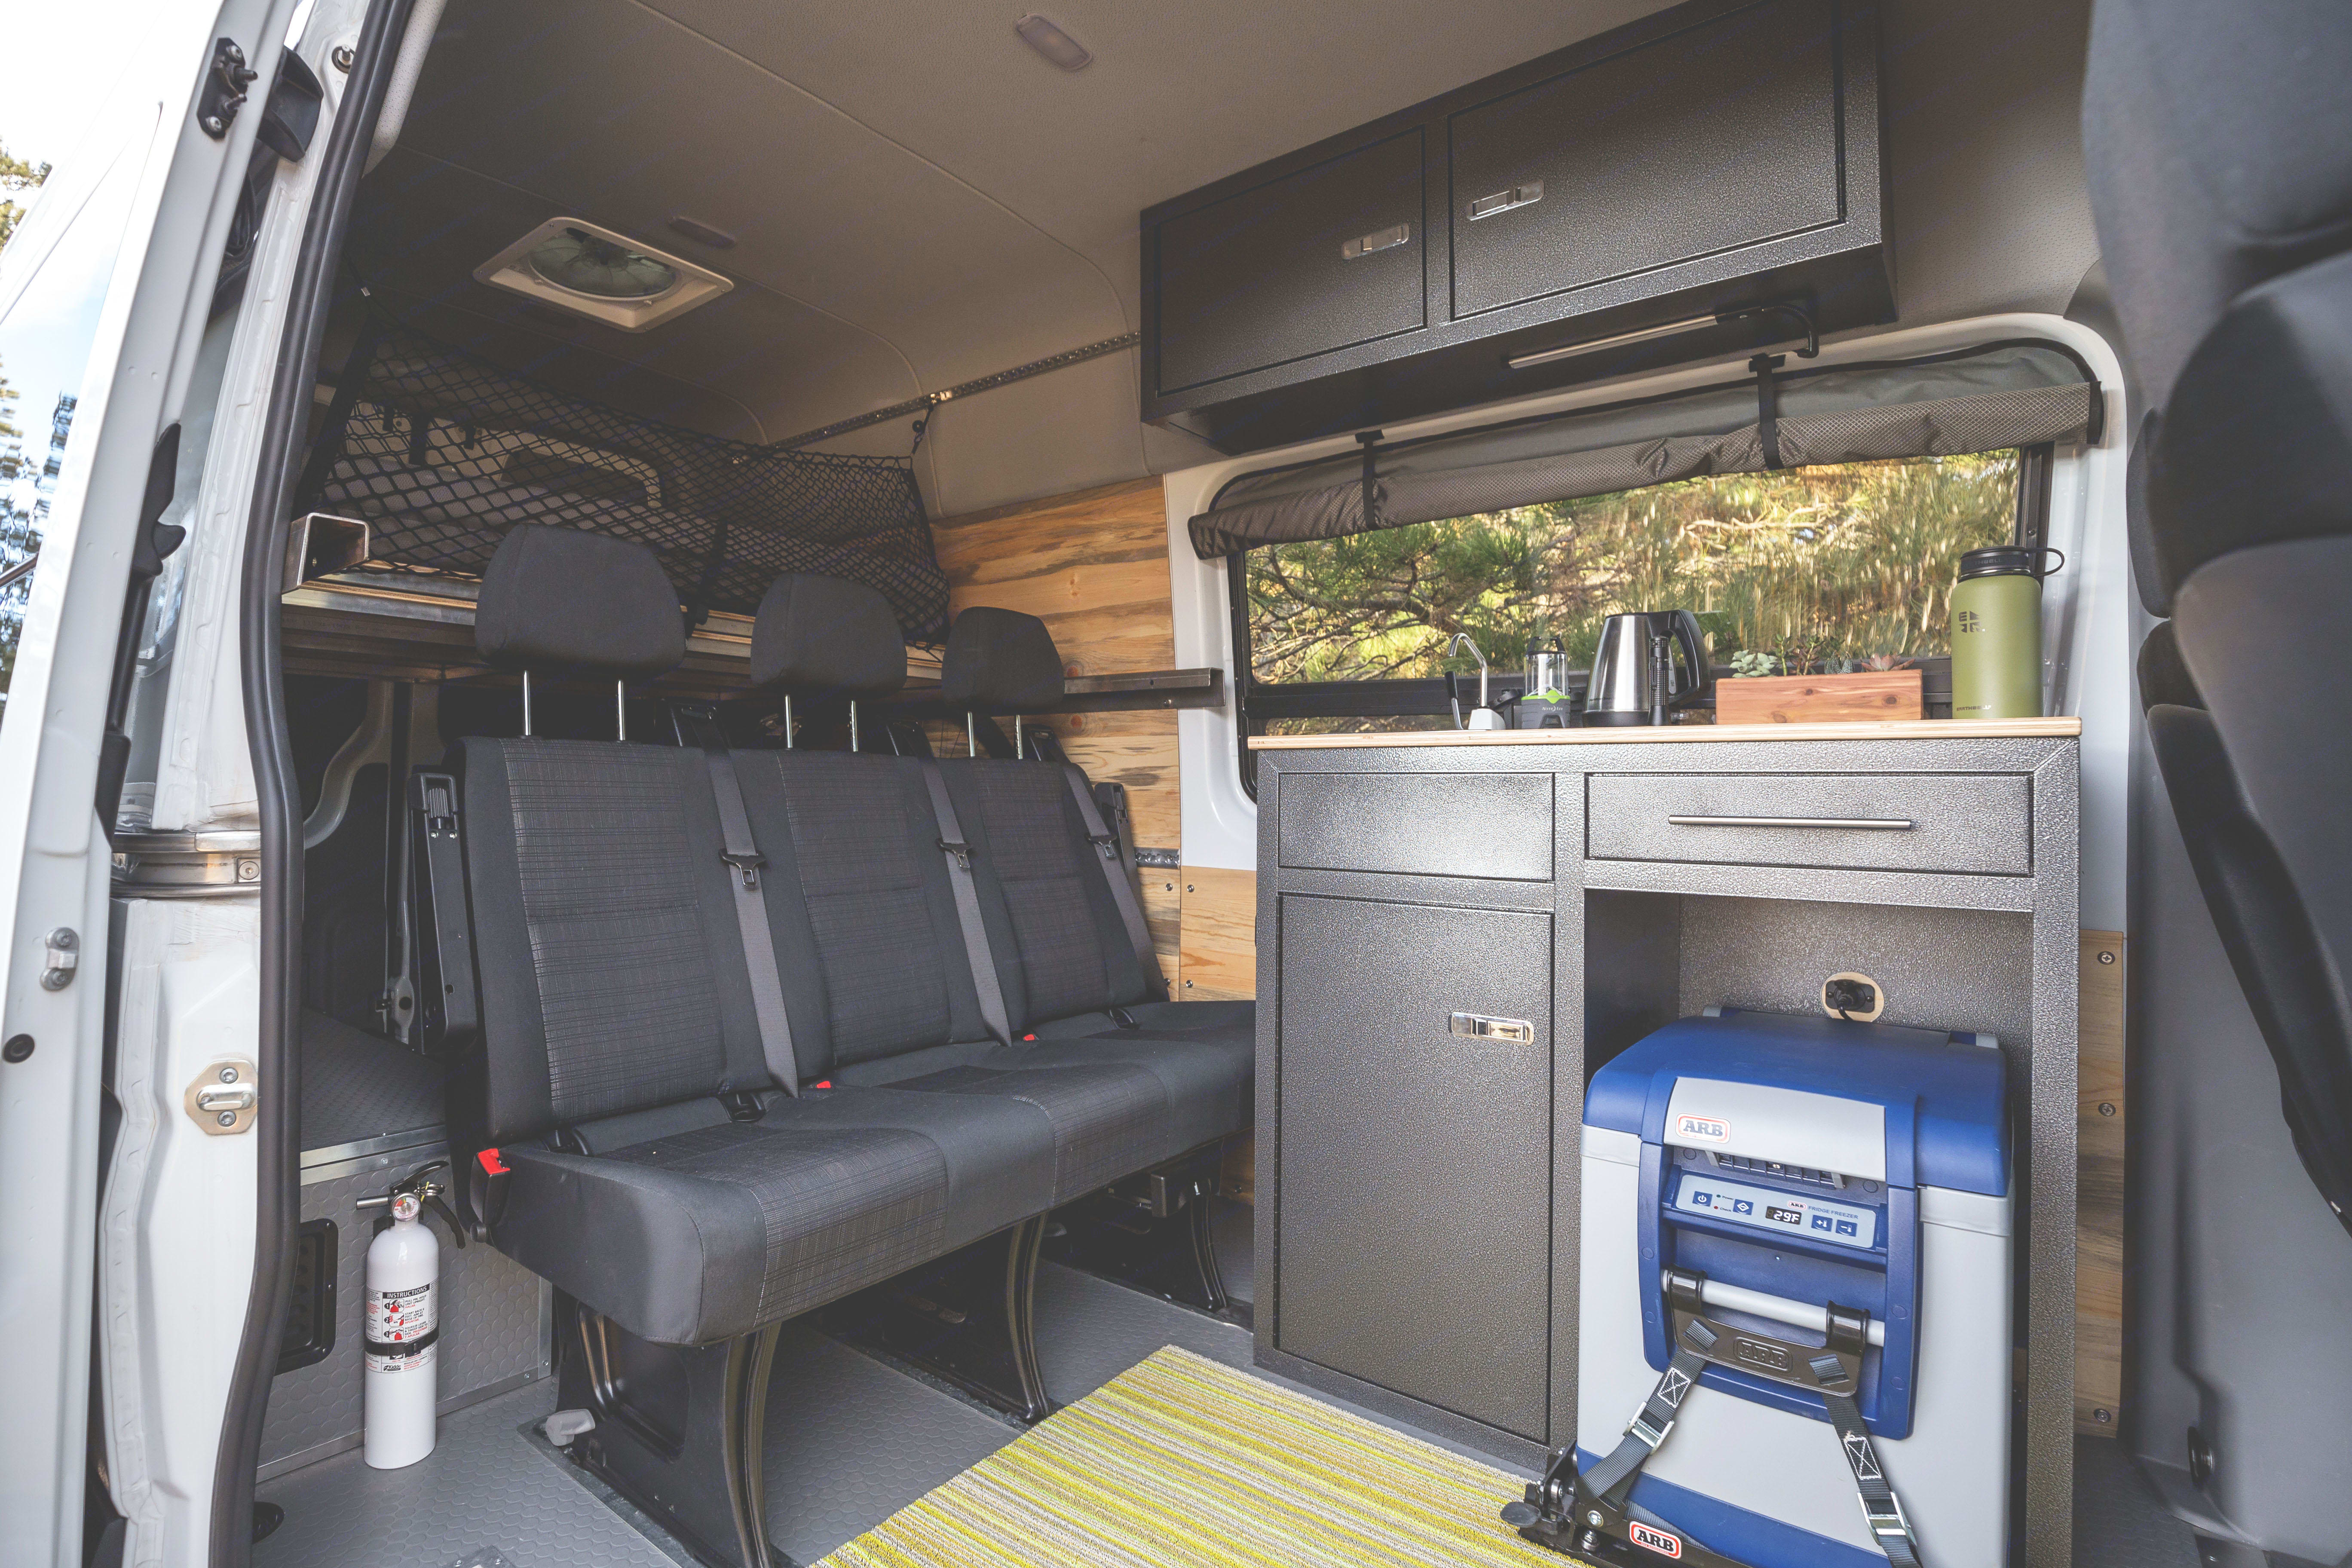 Custom kitchen with sink, counter space and programmable fridge. Mercedes-Benz Sprinter 2016